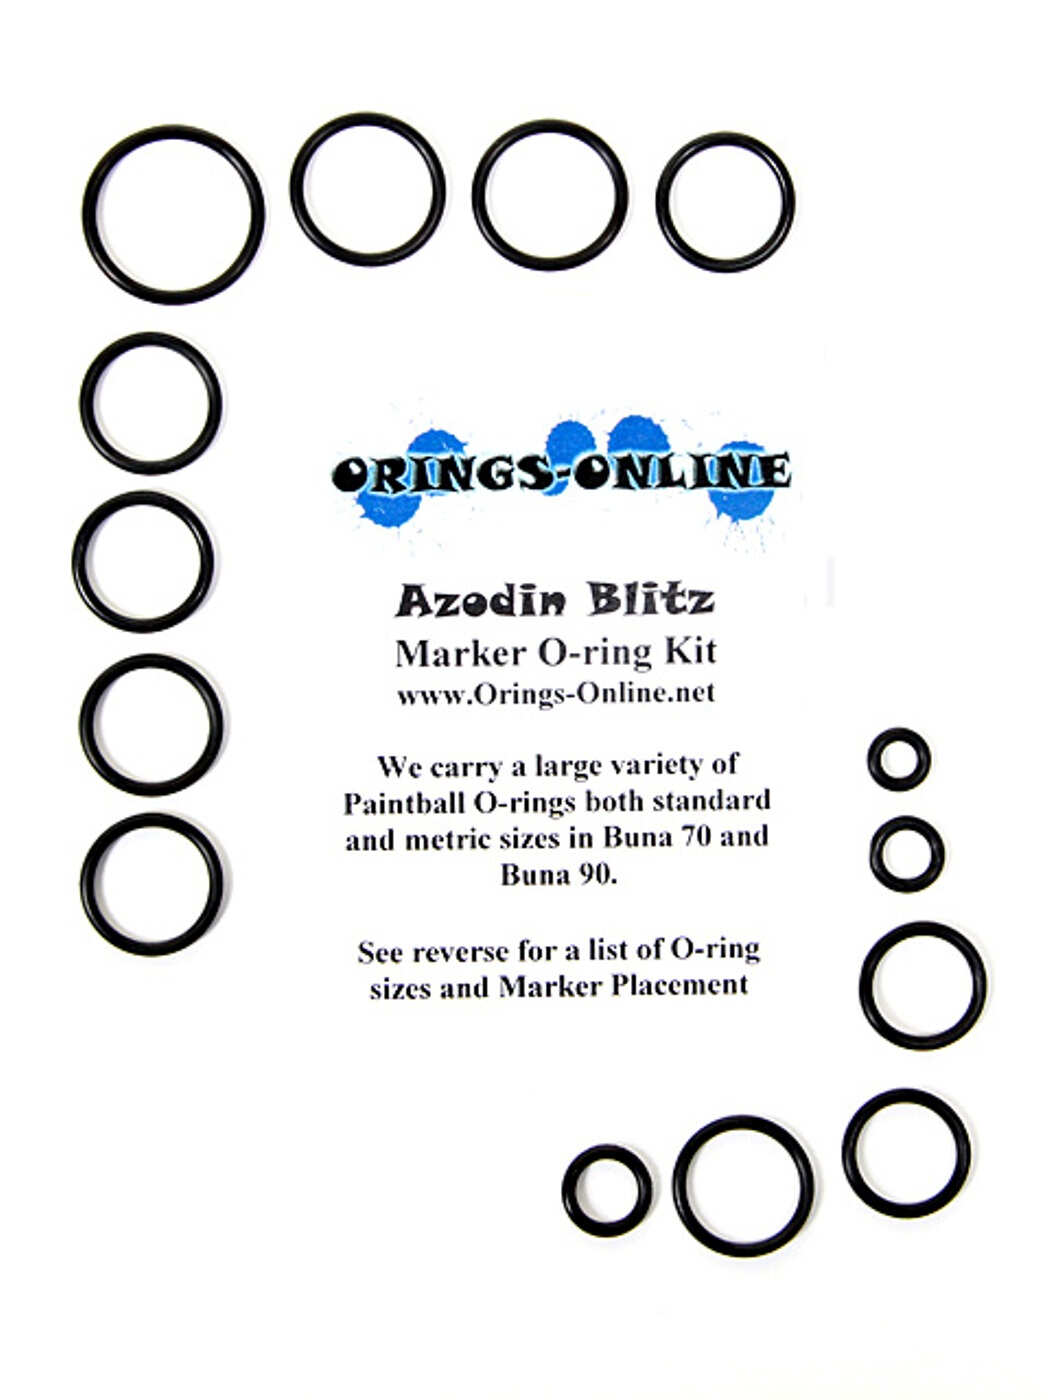 Azodin Blitz Marker O-ring Kit